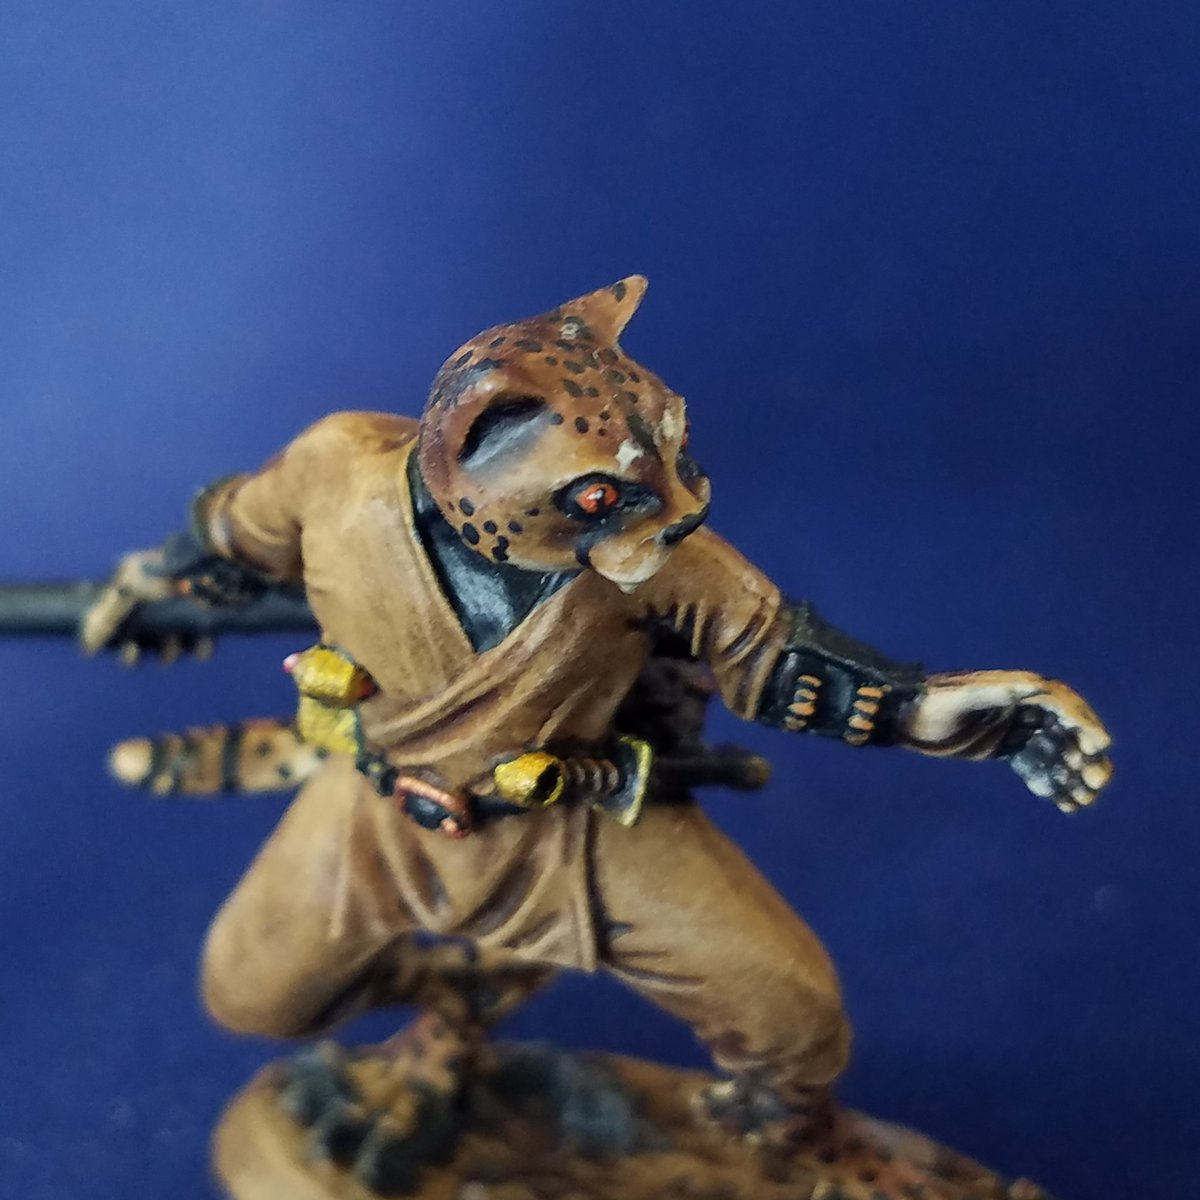 My Character Minis On Twitter Tabaxi Monk Reaper 03923 Tabletop Fantasy Rpg Miniatures Dnd Pathfinderrpg Minis Dnd5e Tabaxi Monk Warlock Wizard Sorcerer Reapermini Paintingminis Ttrpg Etsy Cheetah Https T Co A2mlmkhjbz Can be use as a model for d&d games or other tabletop games. tabletop fantasy rpg miniatures dnd